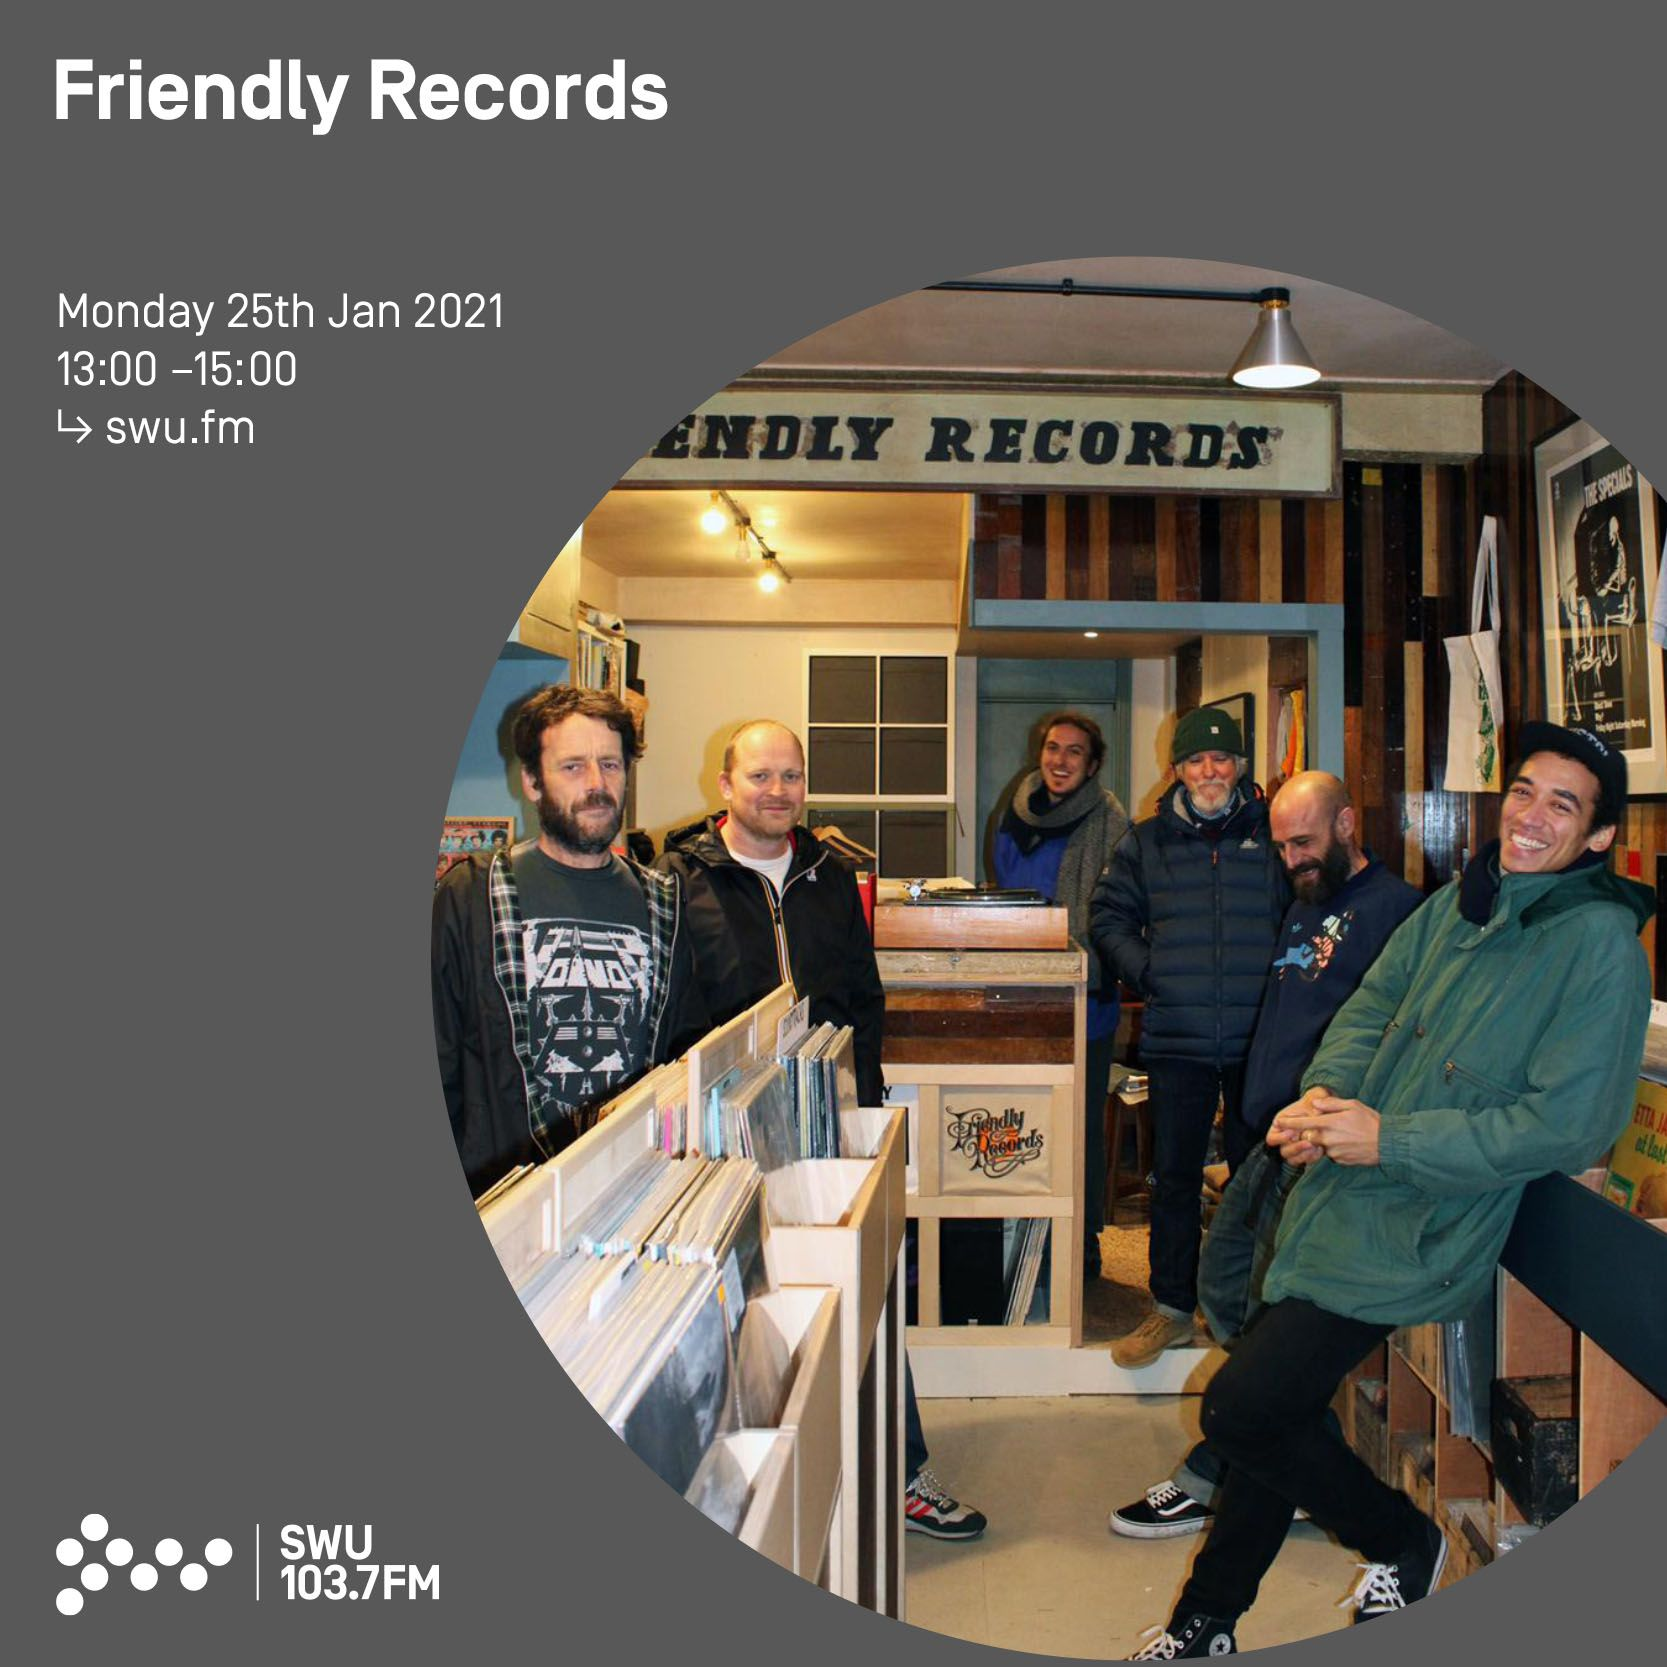 Friendly Records